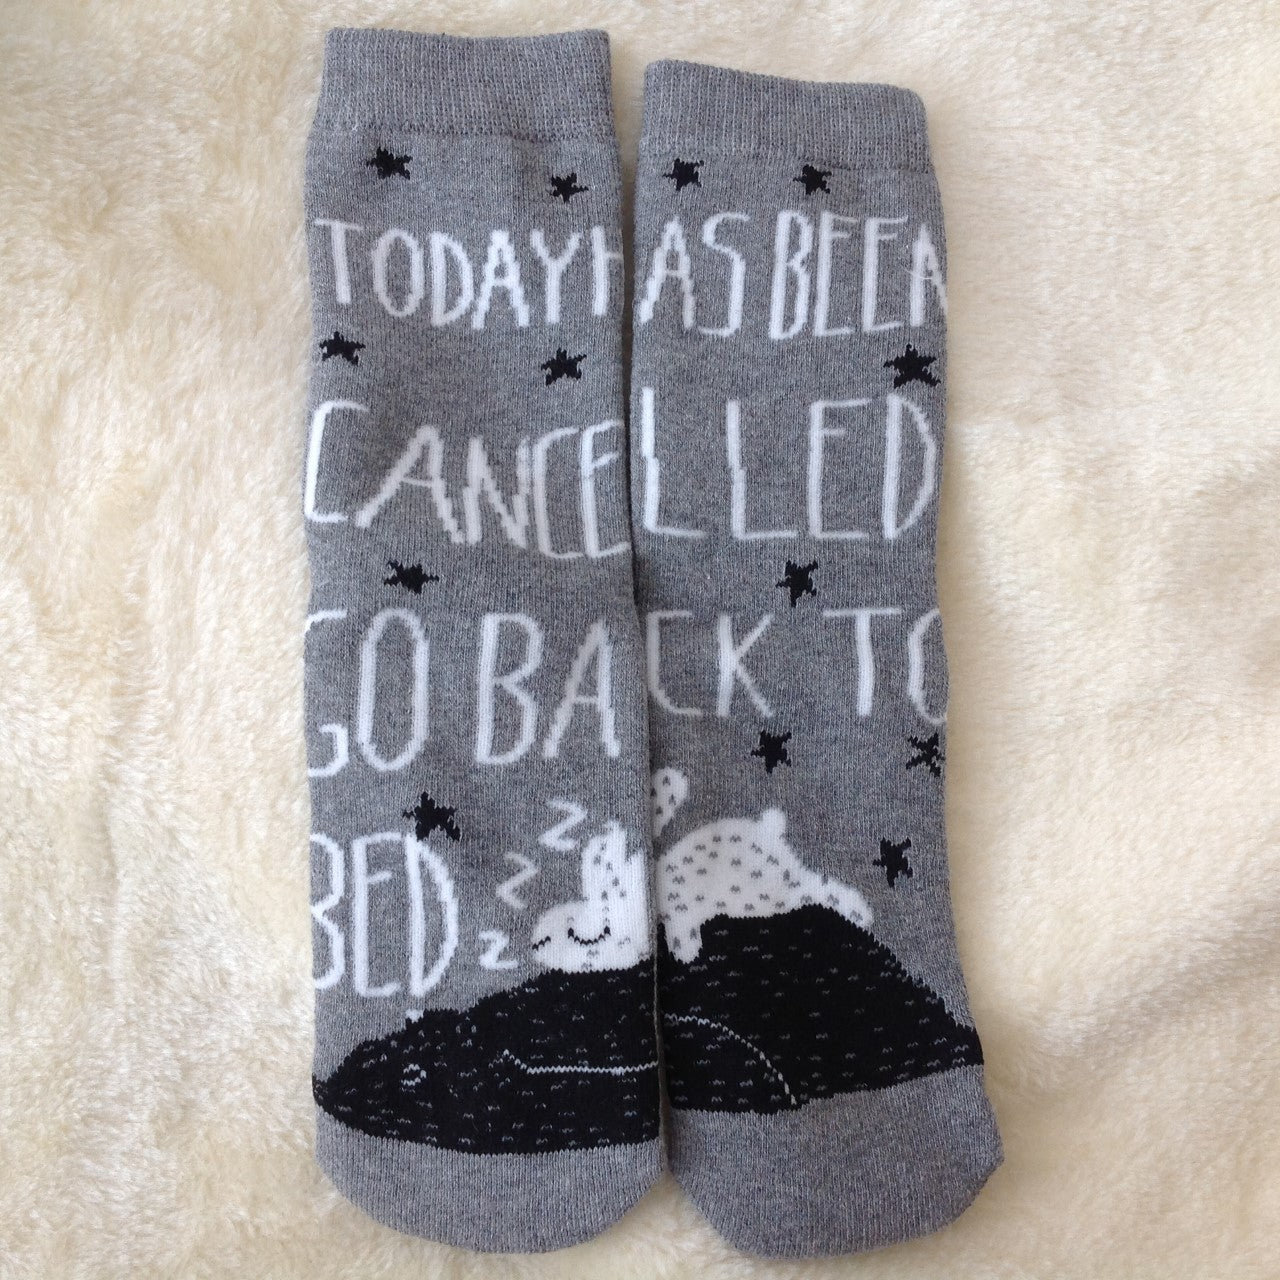 Bunny Rabbit Back To Bed Thick & Warm Socks